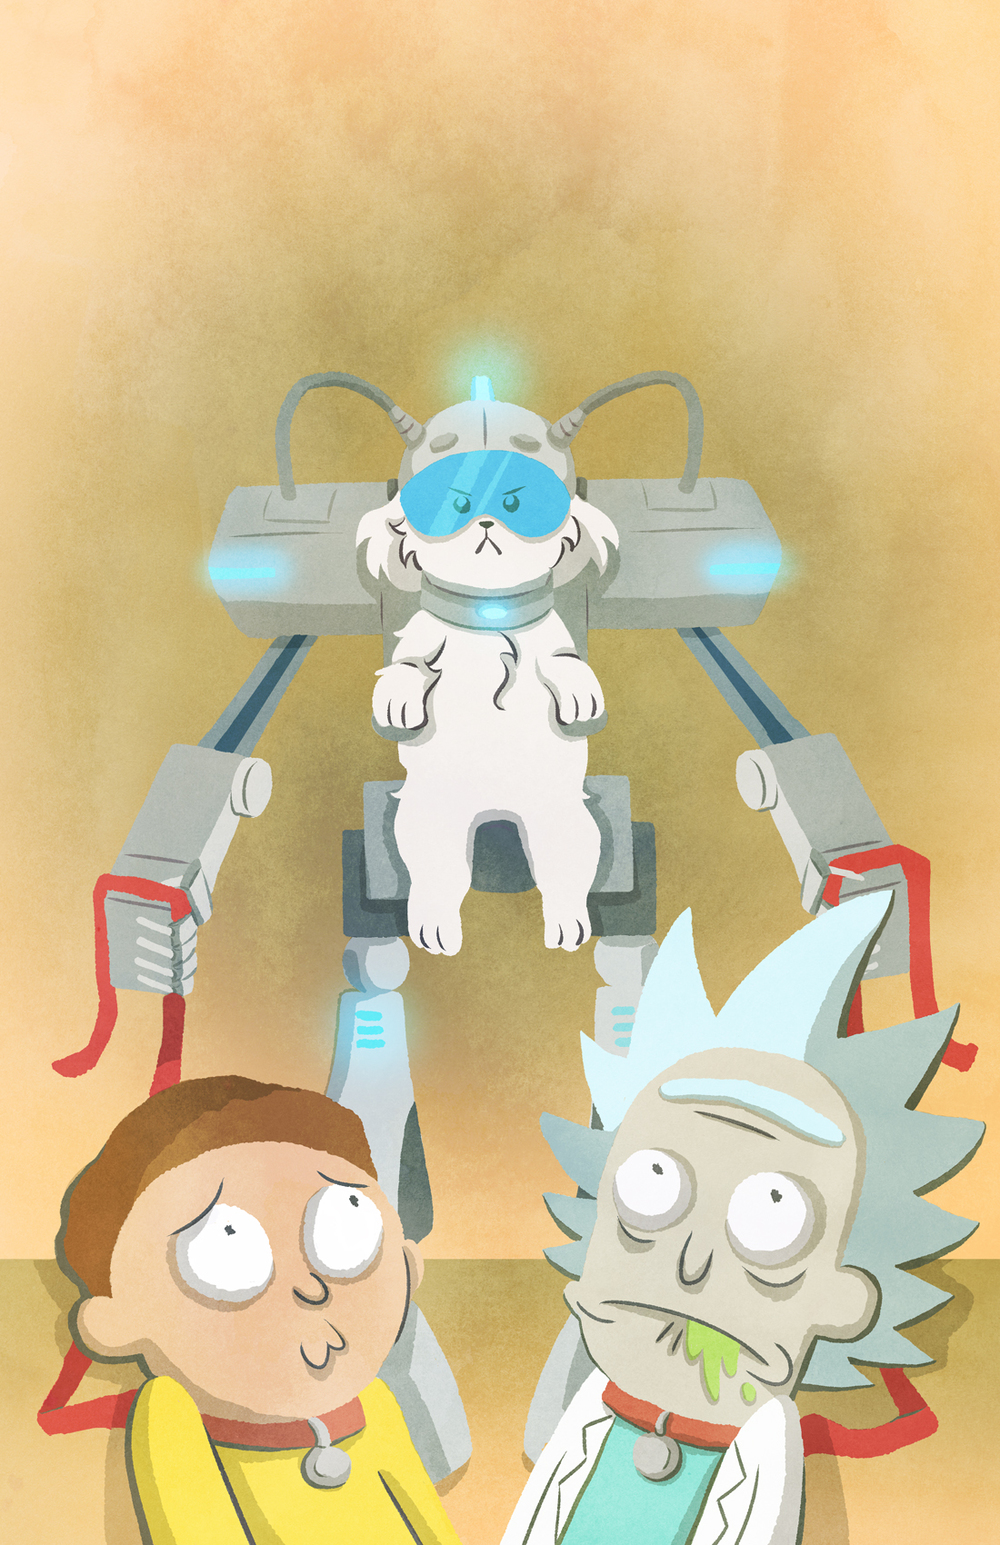 06 Rick Morty cover.jpg